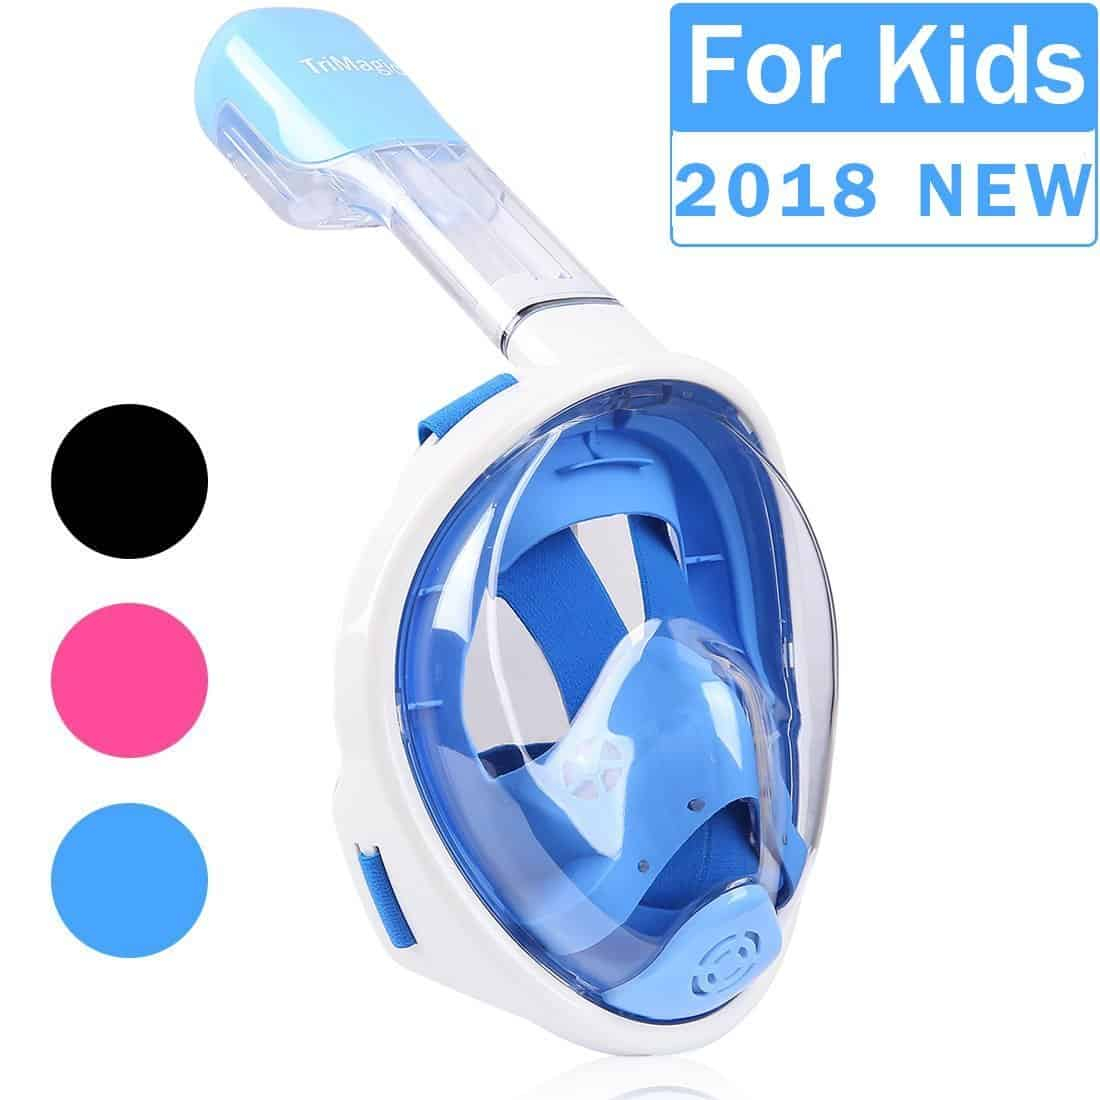 TriMagic Full Face Mask for Children